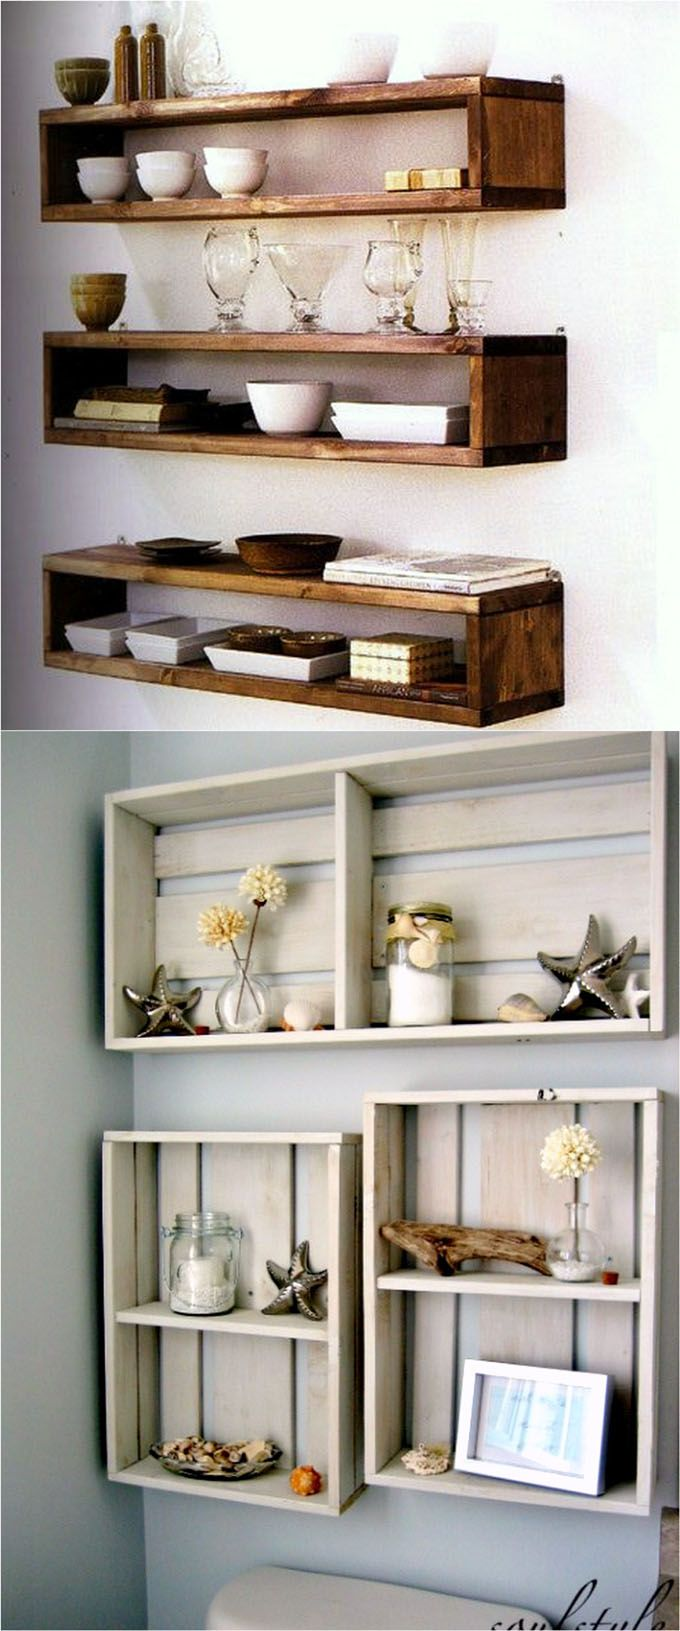 16 easy and stylish diy floating shelves wall shelves projects to try pinterest m bel. Black Bedroom Furniture Sets. Home Design Ideas